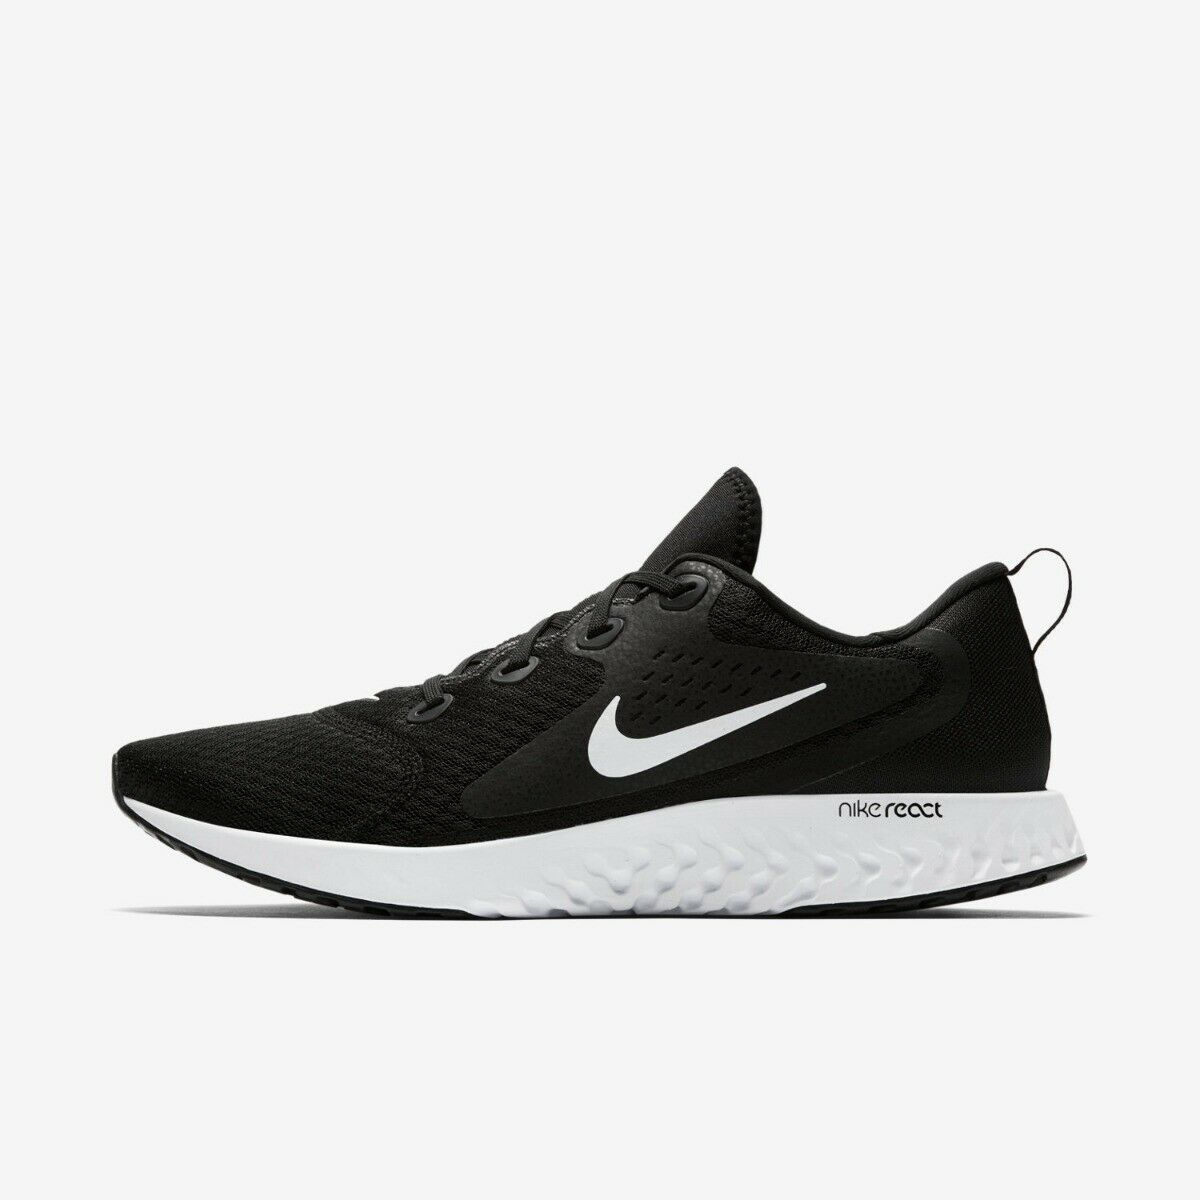 Nike Legend React da men da Corsa shoes da Ginnastica Varie Misure 8 a 12 black